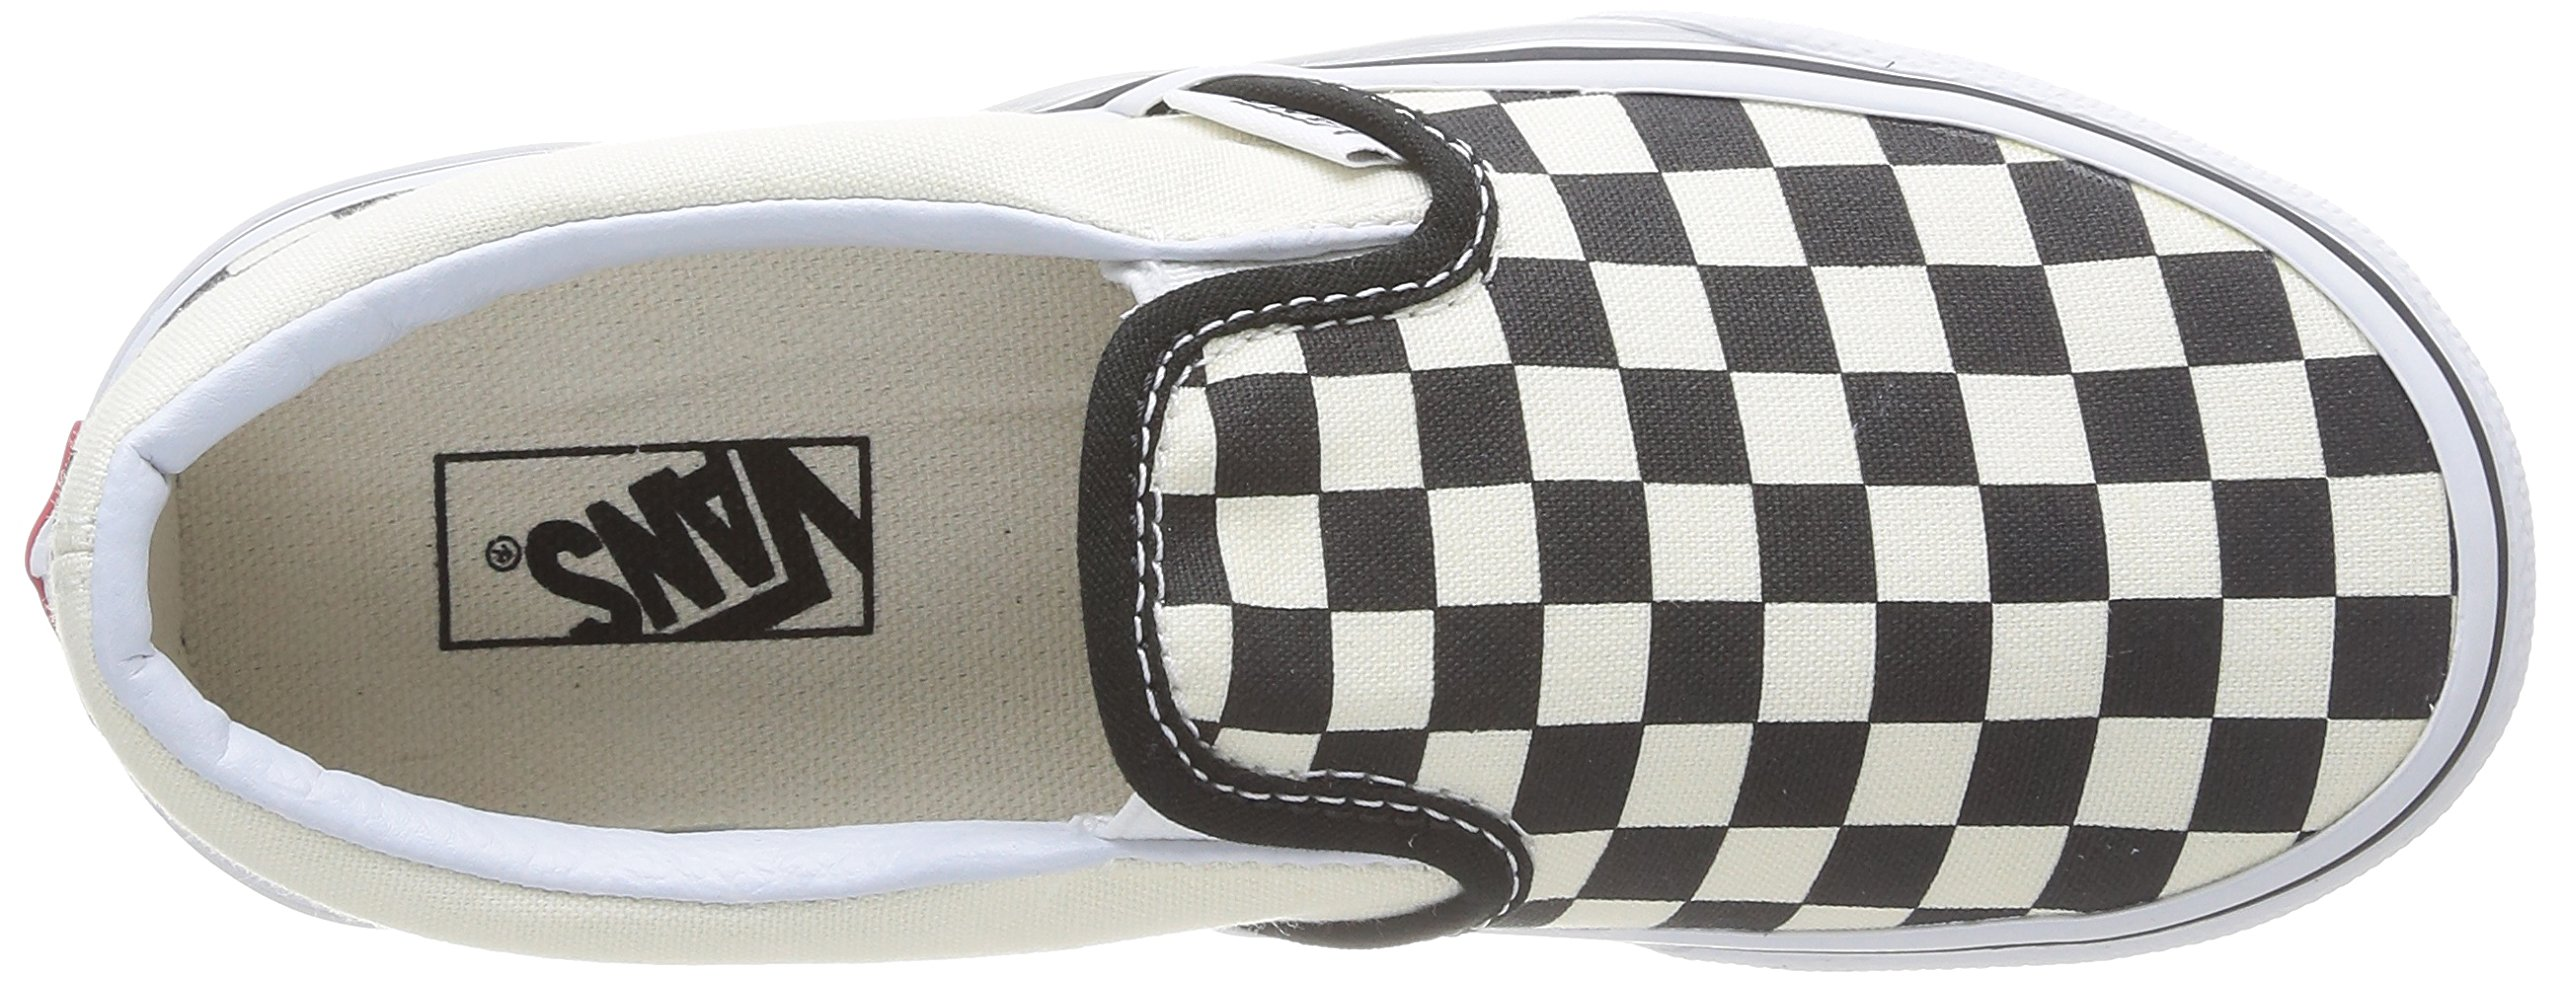 Vans Kids Classic Slip-On (Little Big Kid), ((Checkerboard) Black/White, 13 M by Vans (Image #8)